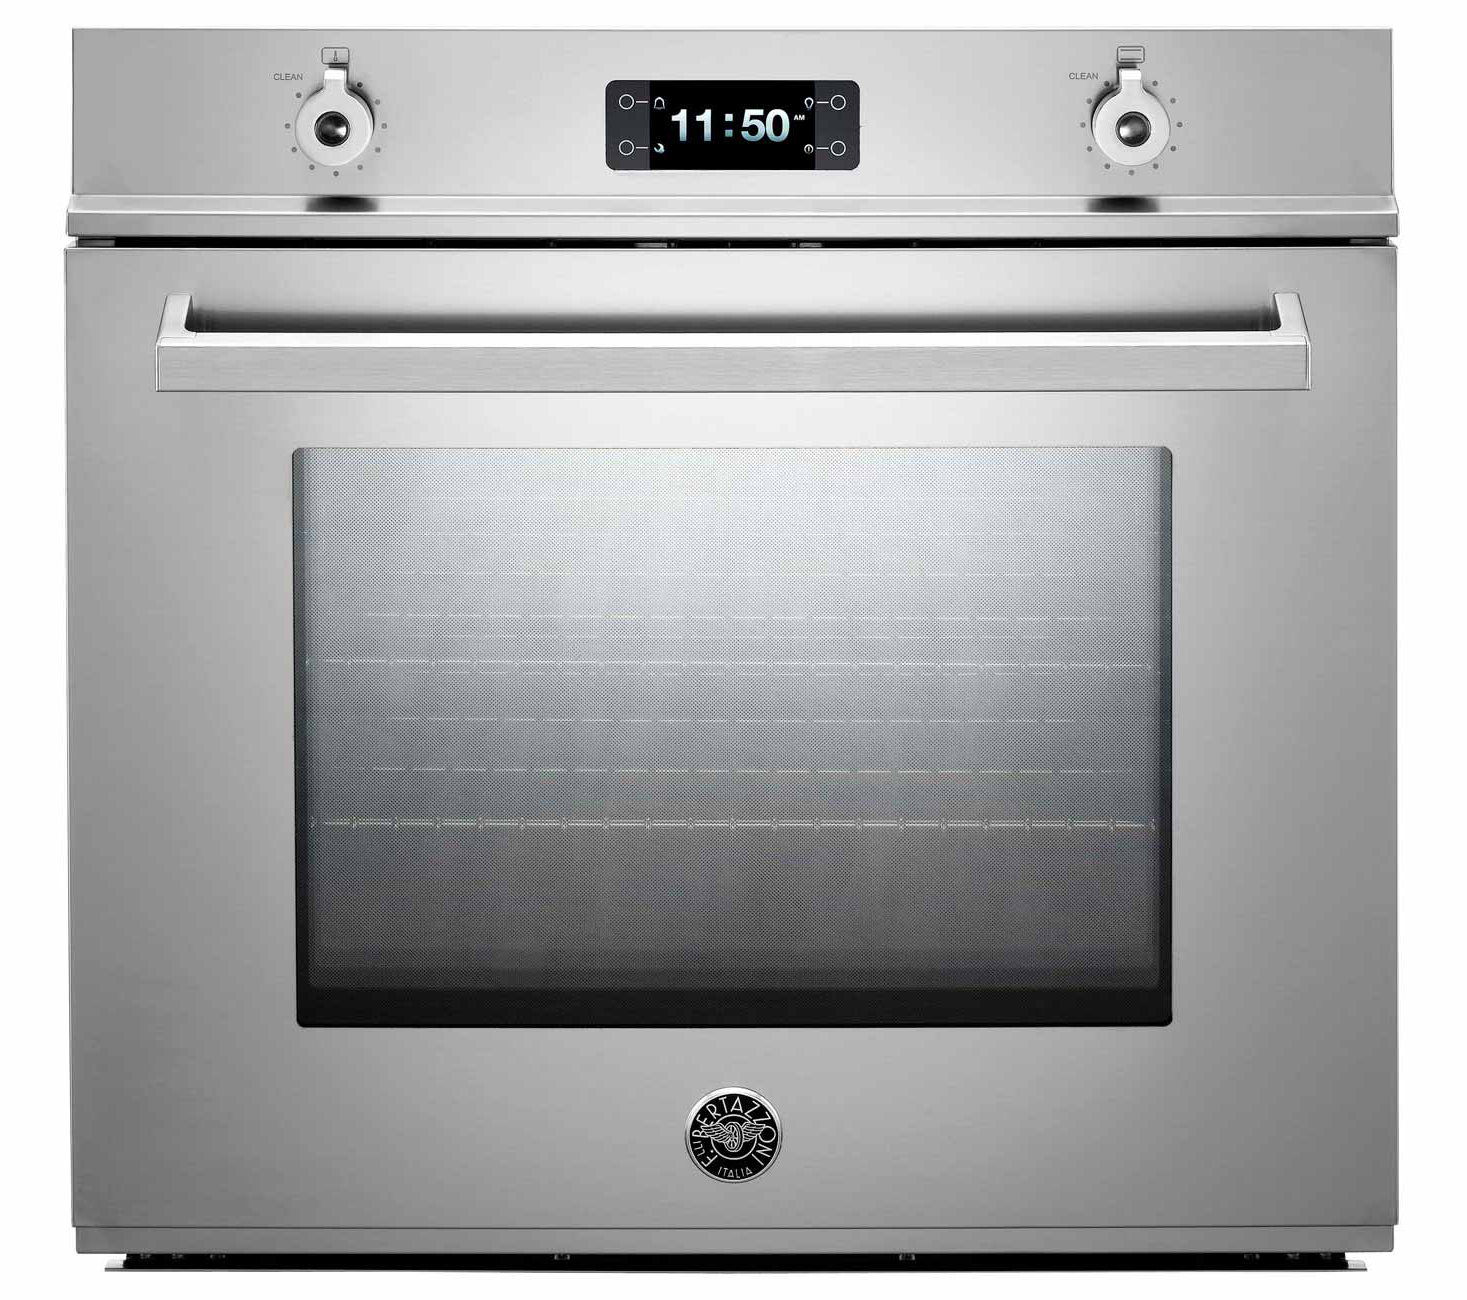 The 30-inch oven from Bertazzoni's Professional Series